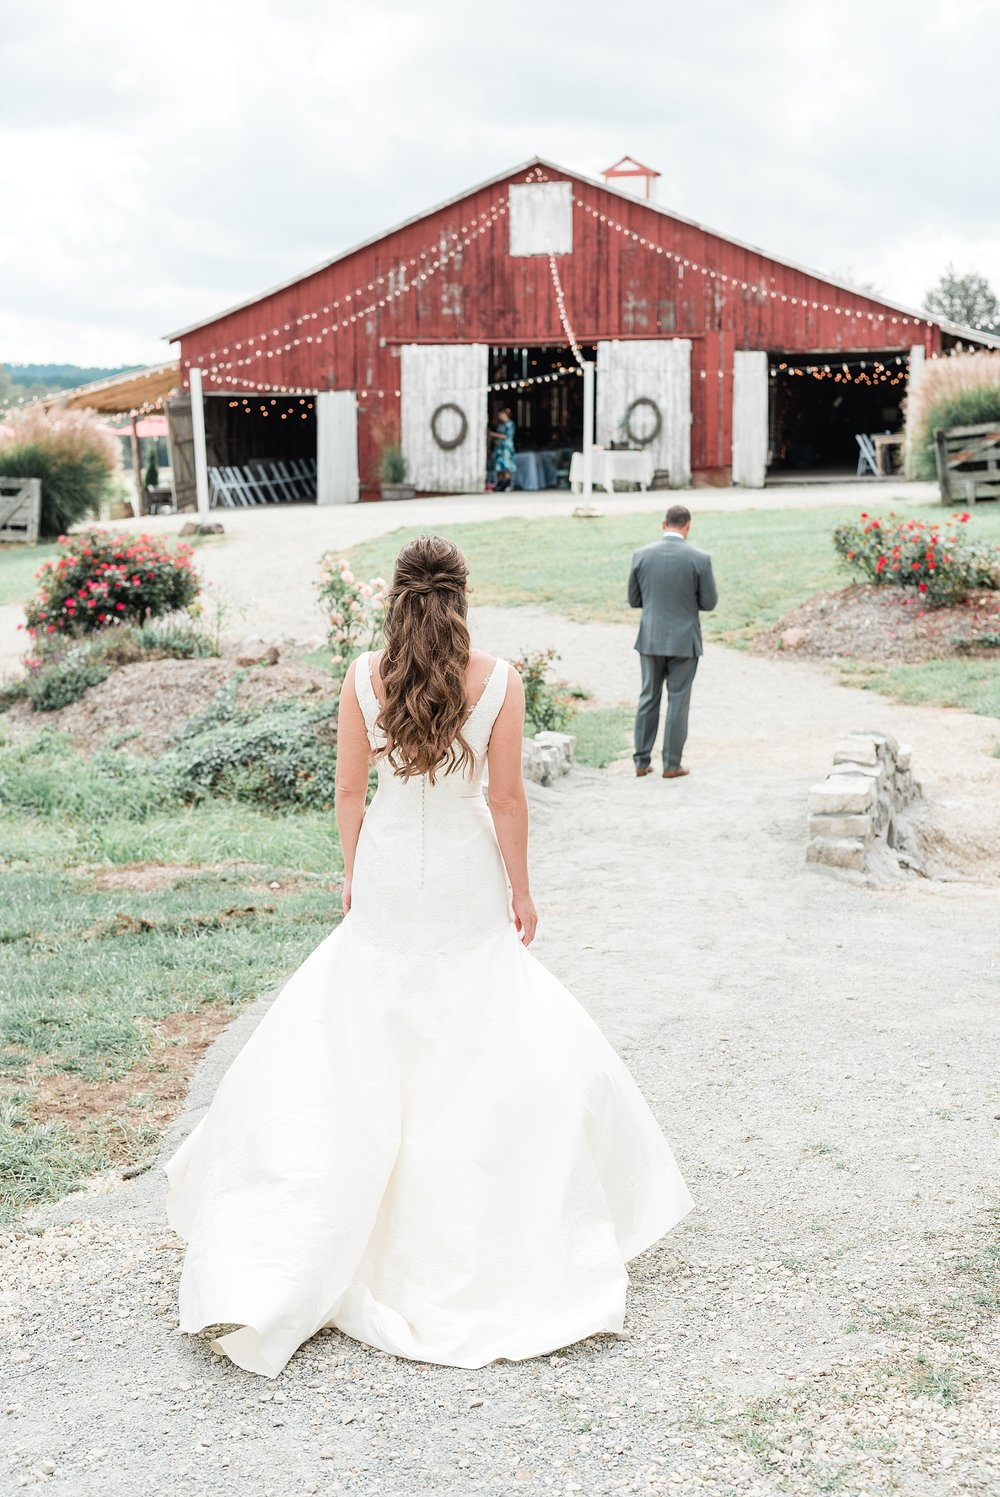 Fine Art Sunset Themed Wedding in Autumn at Dodson Orchards by Kelsi Kliethermes Photography_0051.jpg